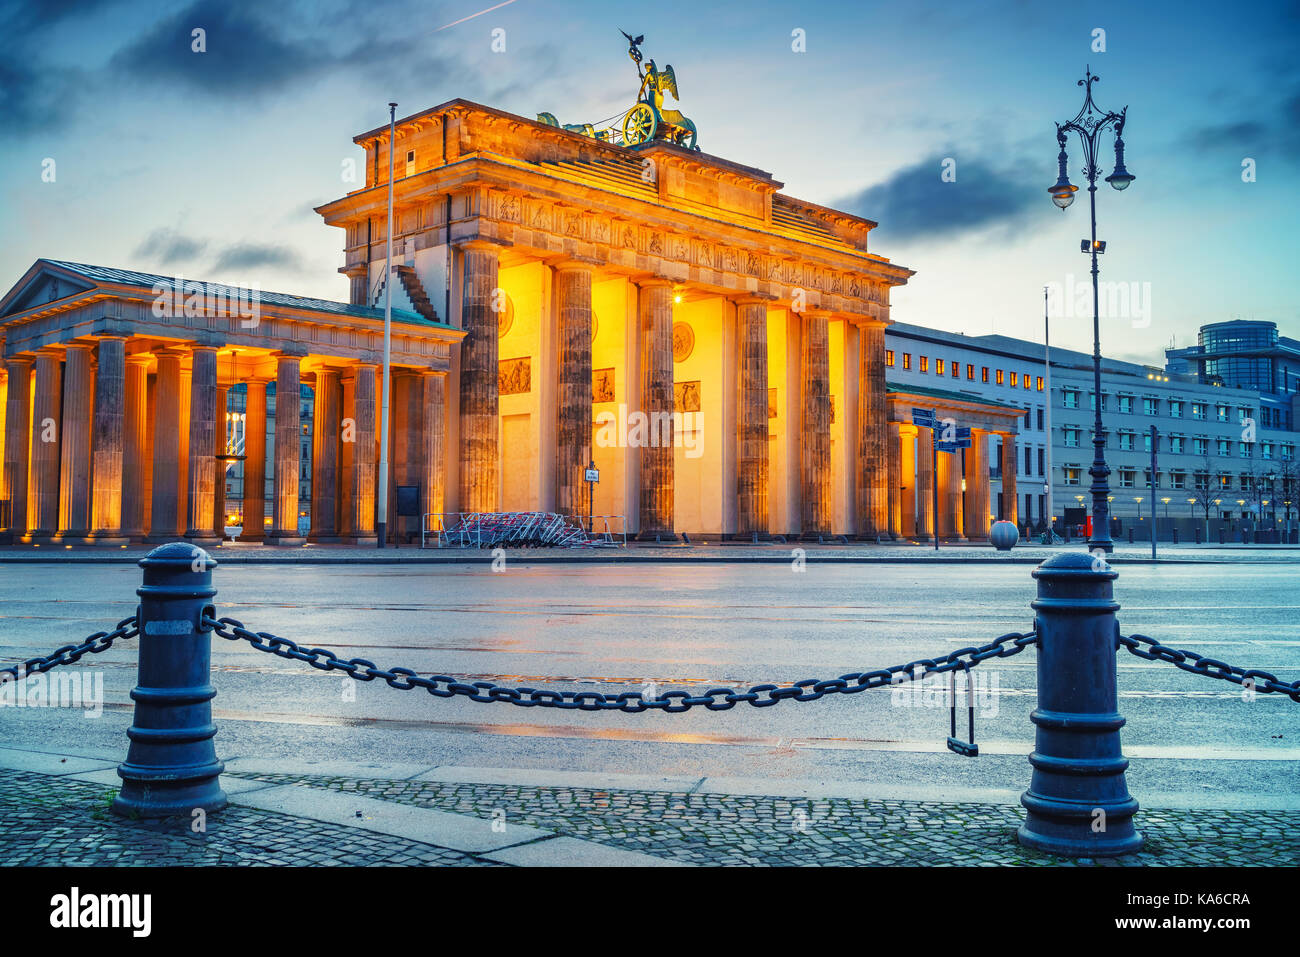 Brandenburg gate at dusk - Stock Image